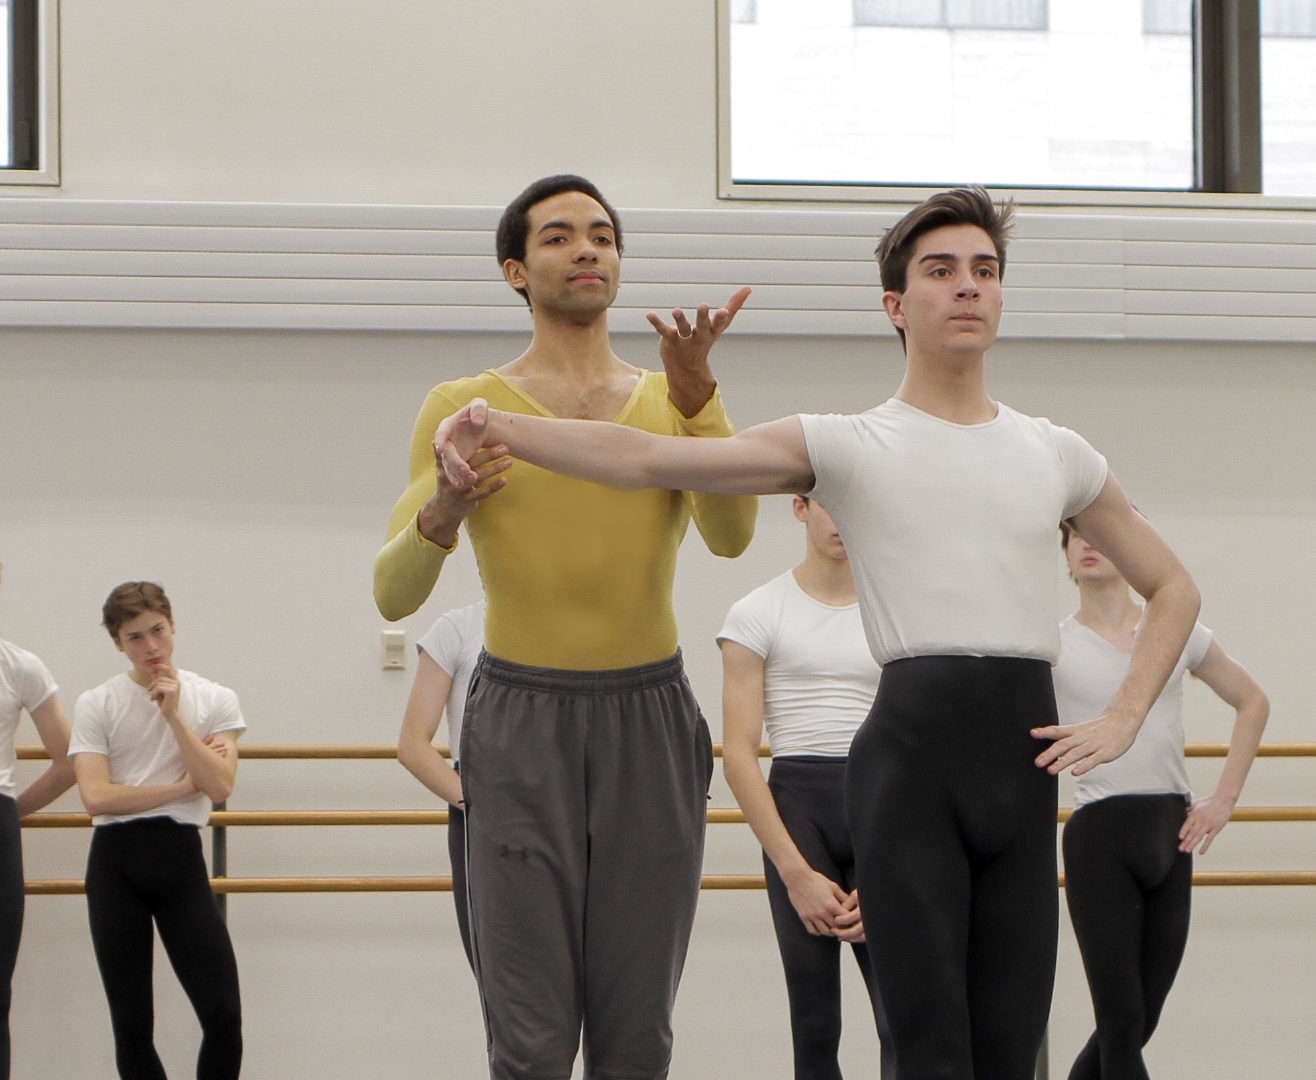 Silas Farley, a tall, slender Black man, here wearing grey sweat pants over a chartreuse biketard, gently lifts the arm of a male ballet student, making a 'lift up' gesture with his free hand.